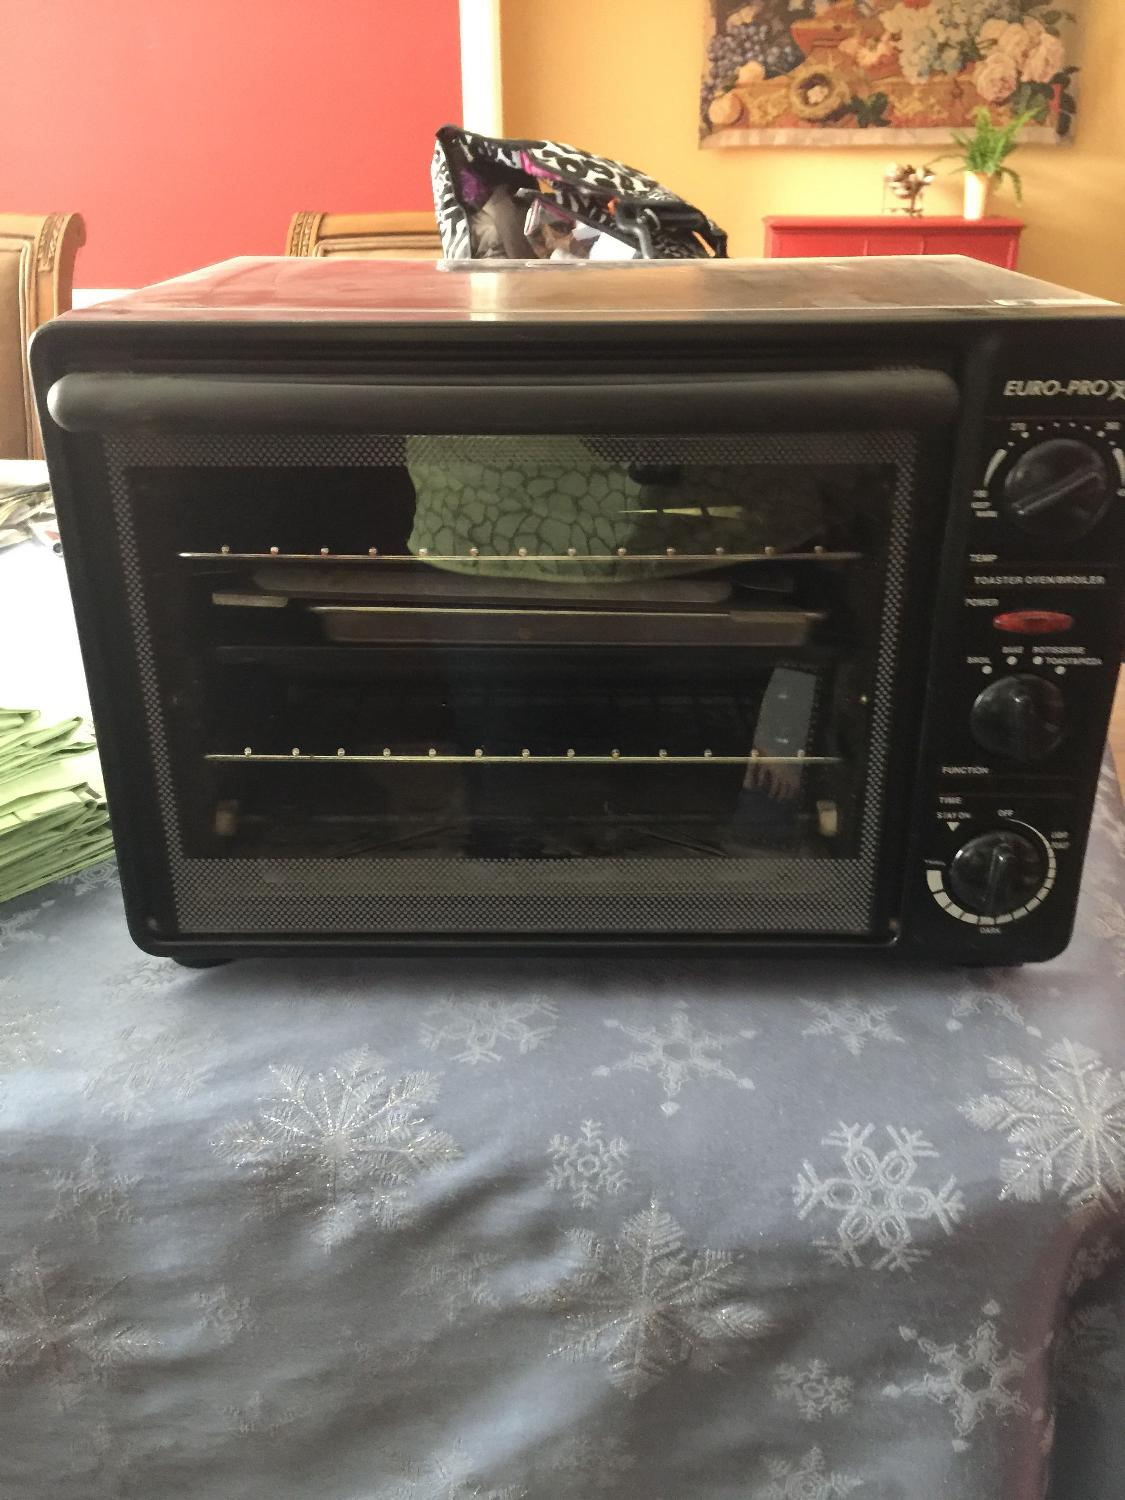 Countertop Oven For Sale : Find more Toaster Oven for sale at up to 90% off - Rosenberg, TX